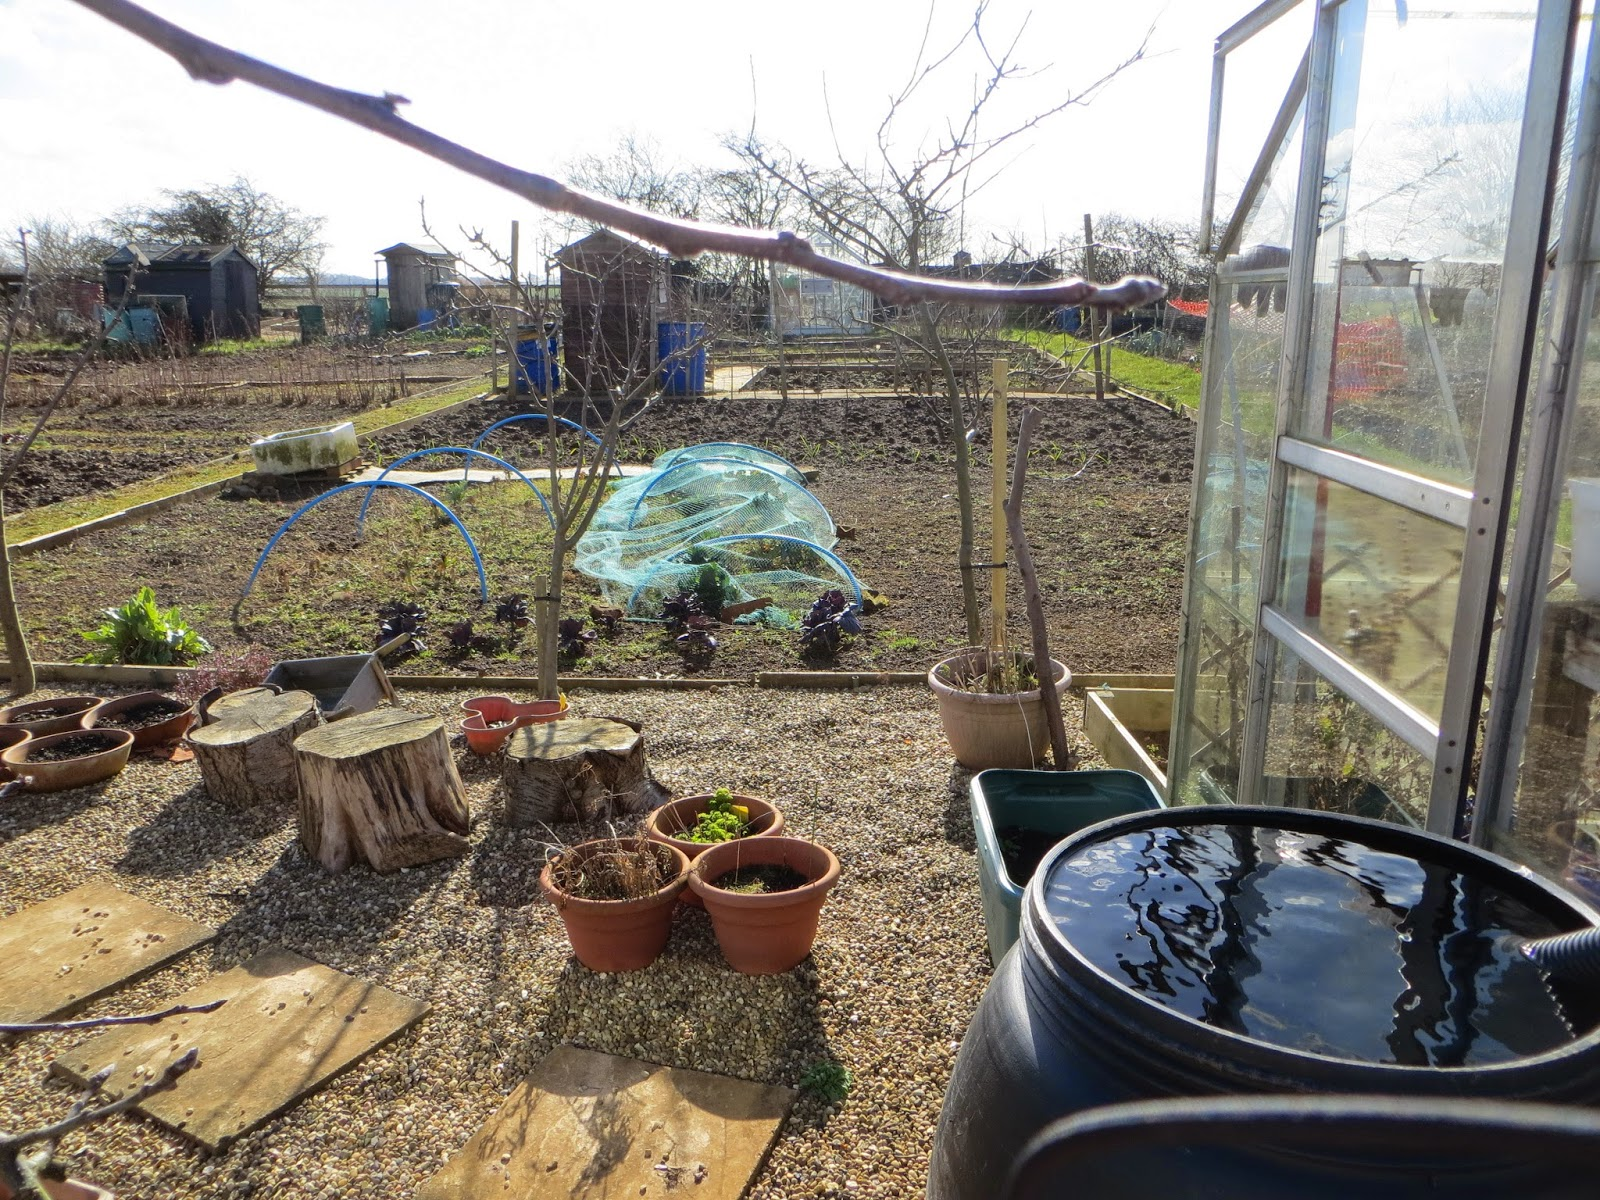 how's the allotment looking as winter turns to spring??